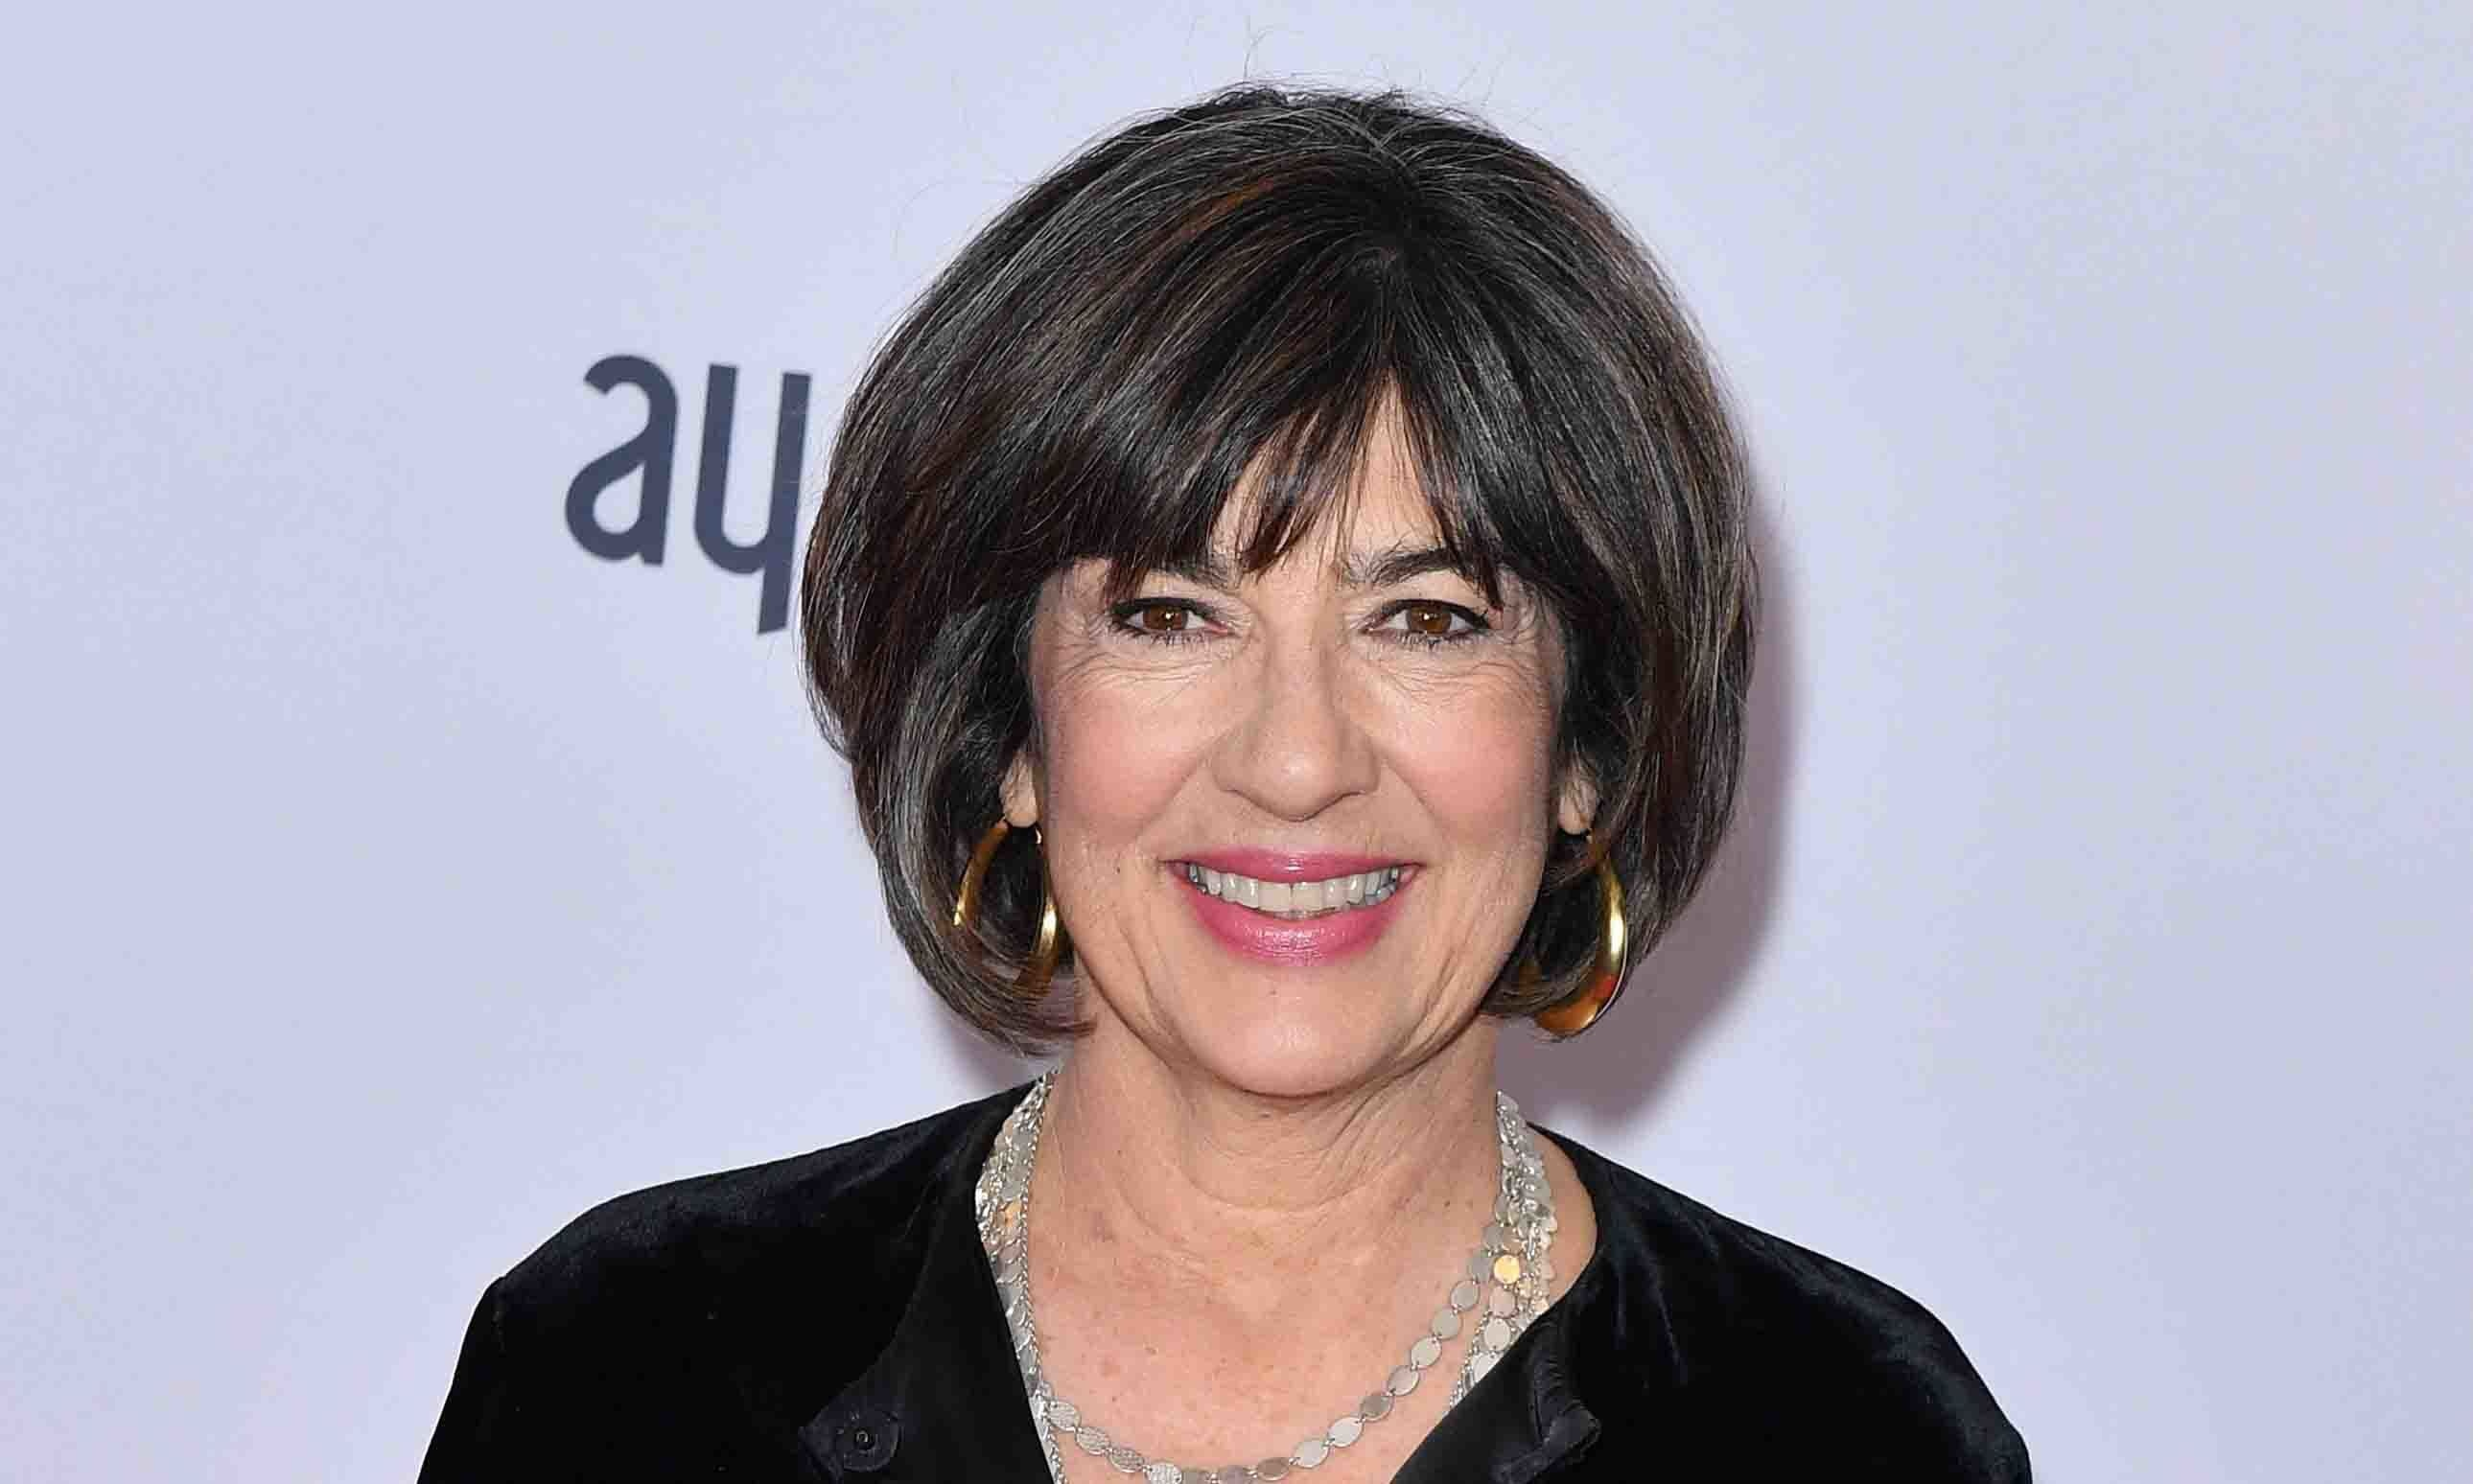 In this file photo, Christiane Amanpour arrives for the 47th Annual International Emmy Awards at New York Hilton in New York City. — AFP